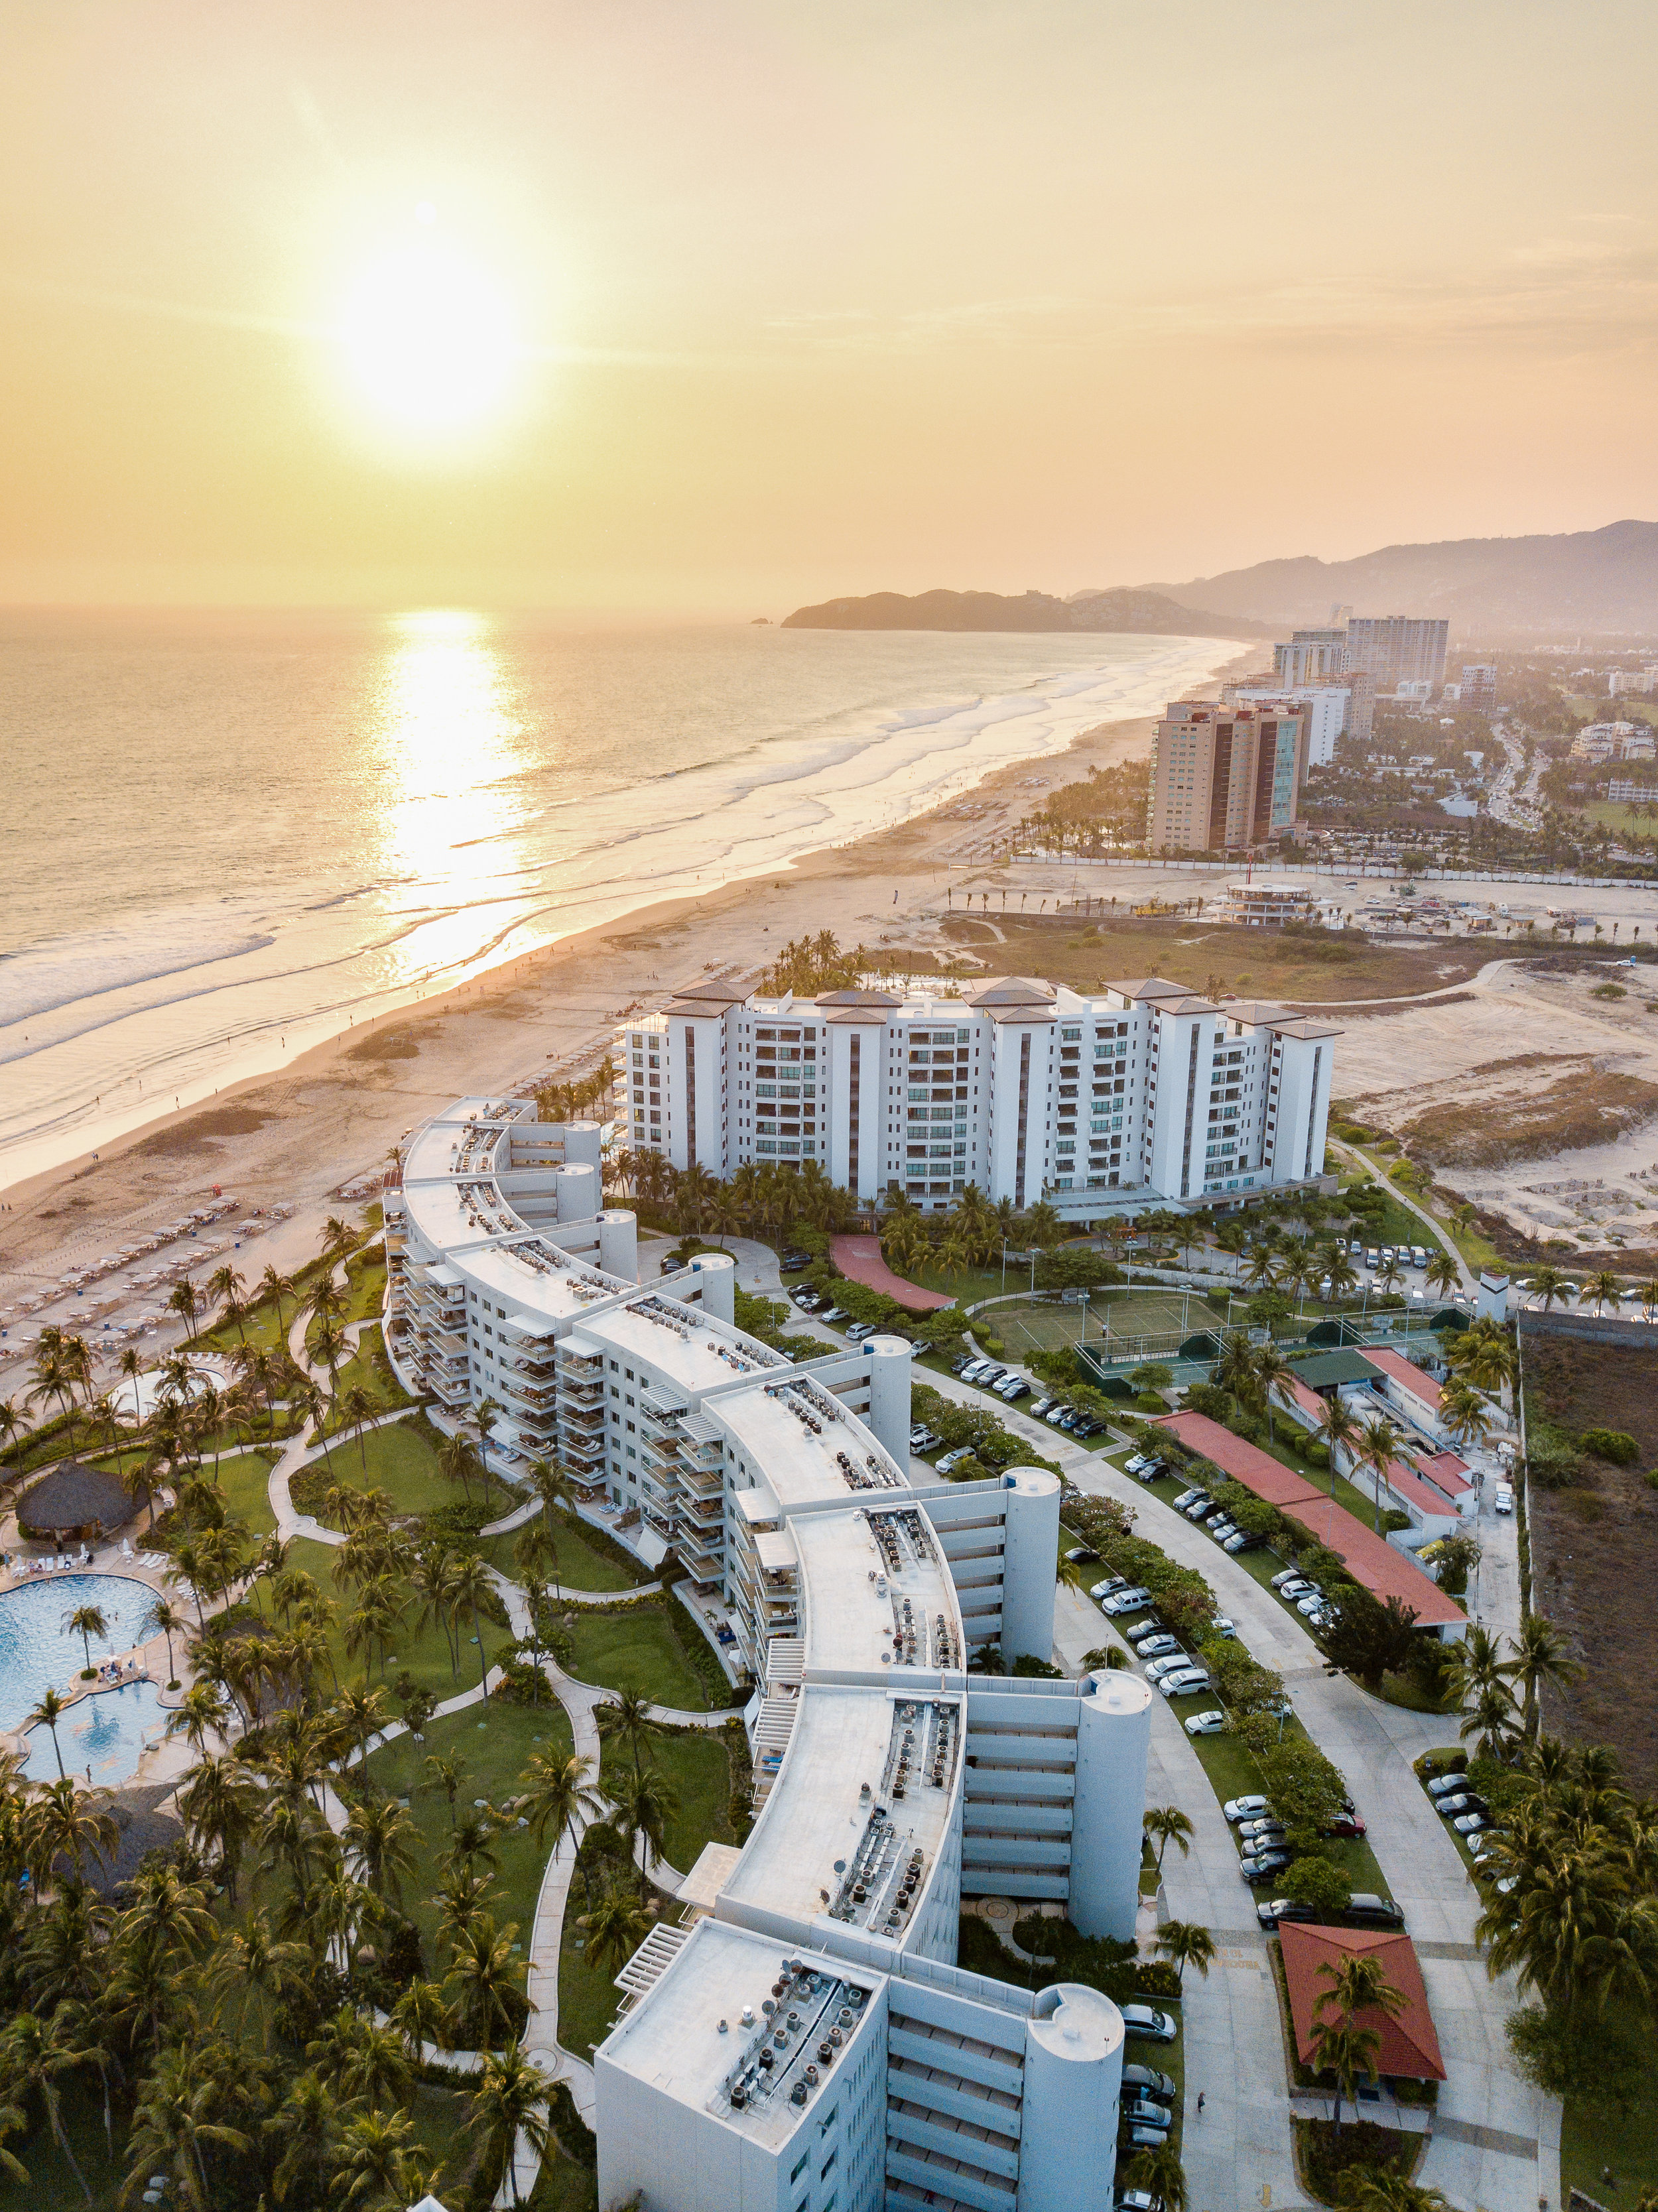 Drone Photography -